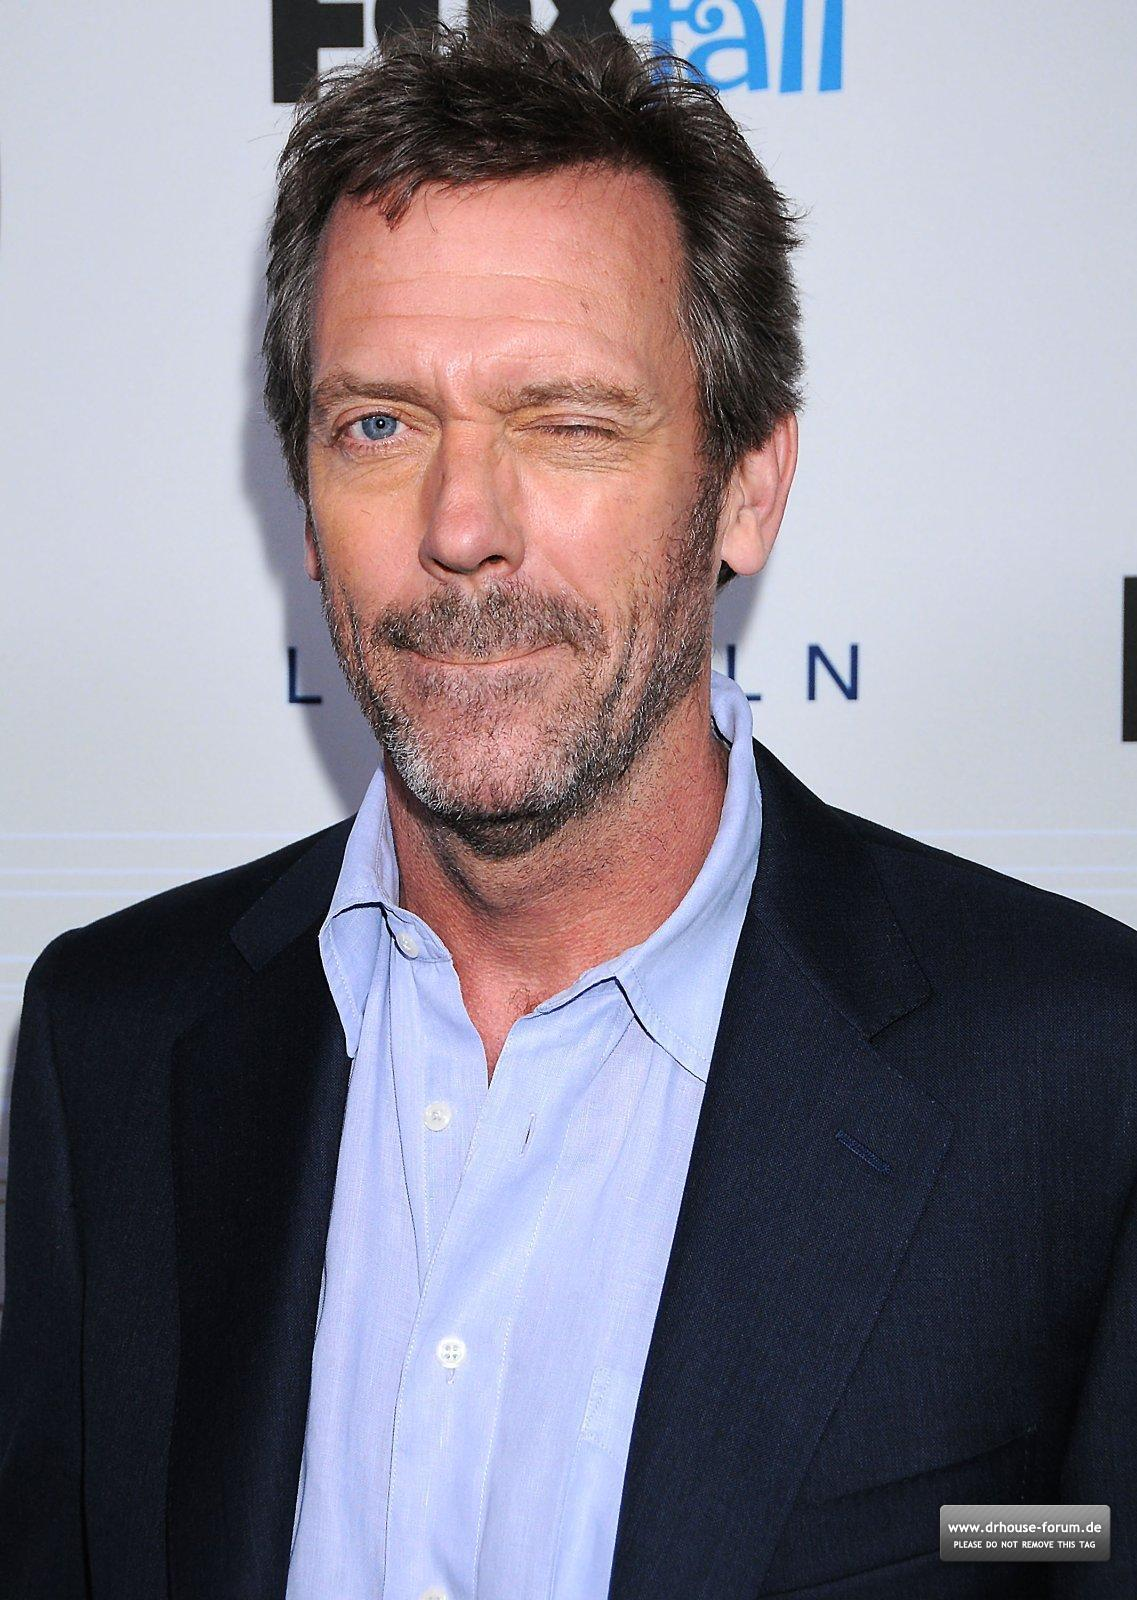 http://2.bp.blogspot.com/-mnM4NRQRODE/Tz5vHa8CiNI/AAAAAAAABKM/_YaQsMKOUJw/s1600/Hugh-Laurie-Fox-Fall-Party-2010-hugh-and-lisa-15534416-1137-1600.jpg